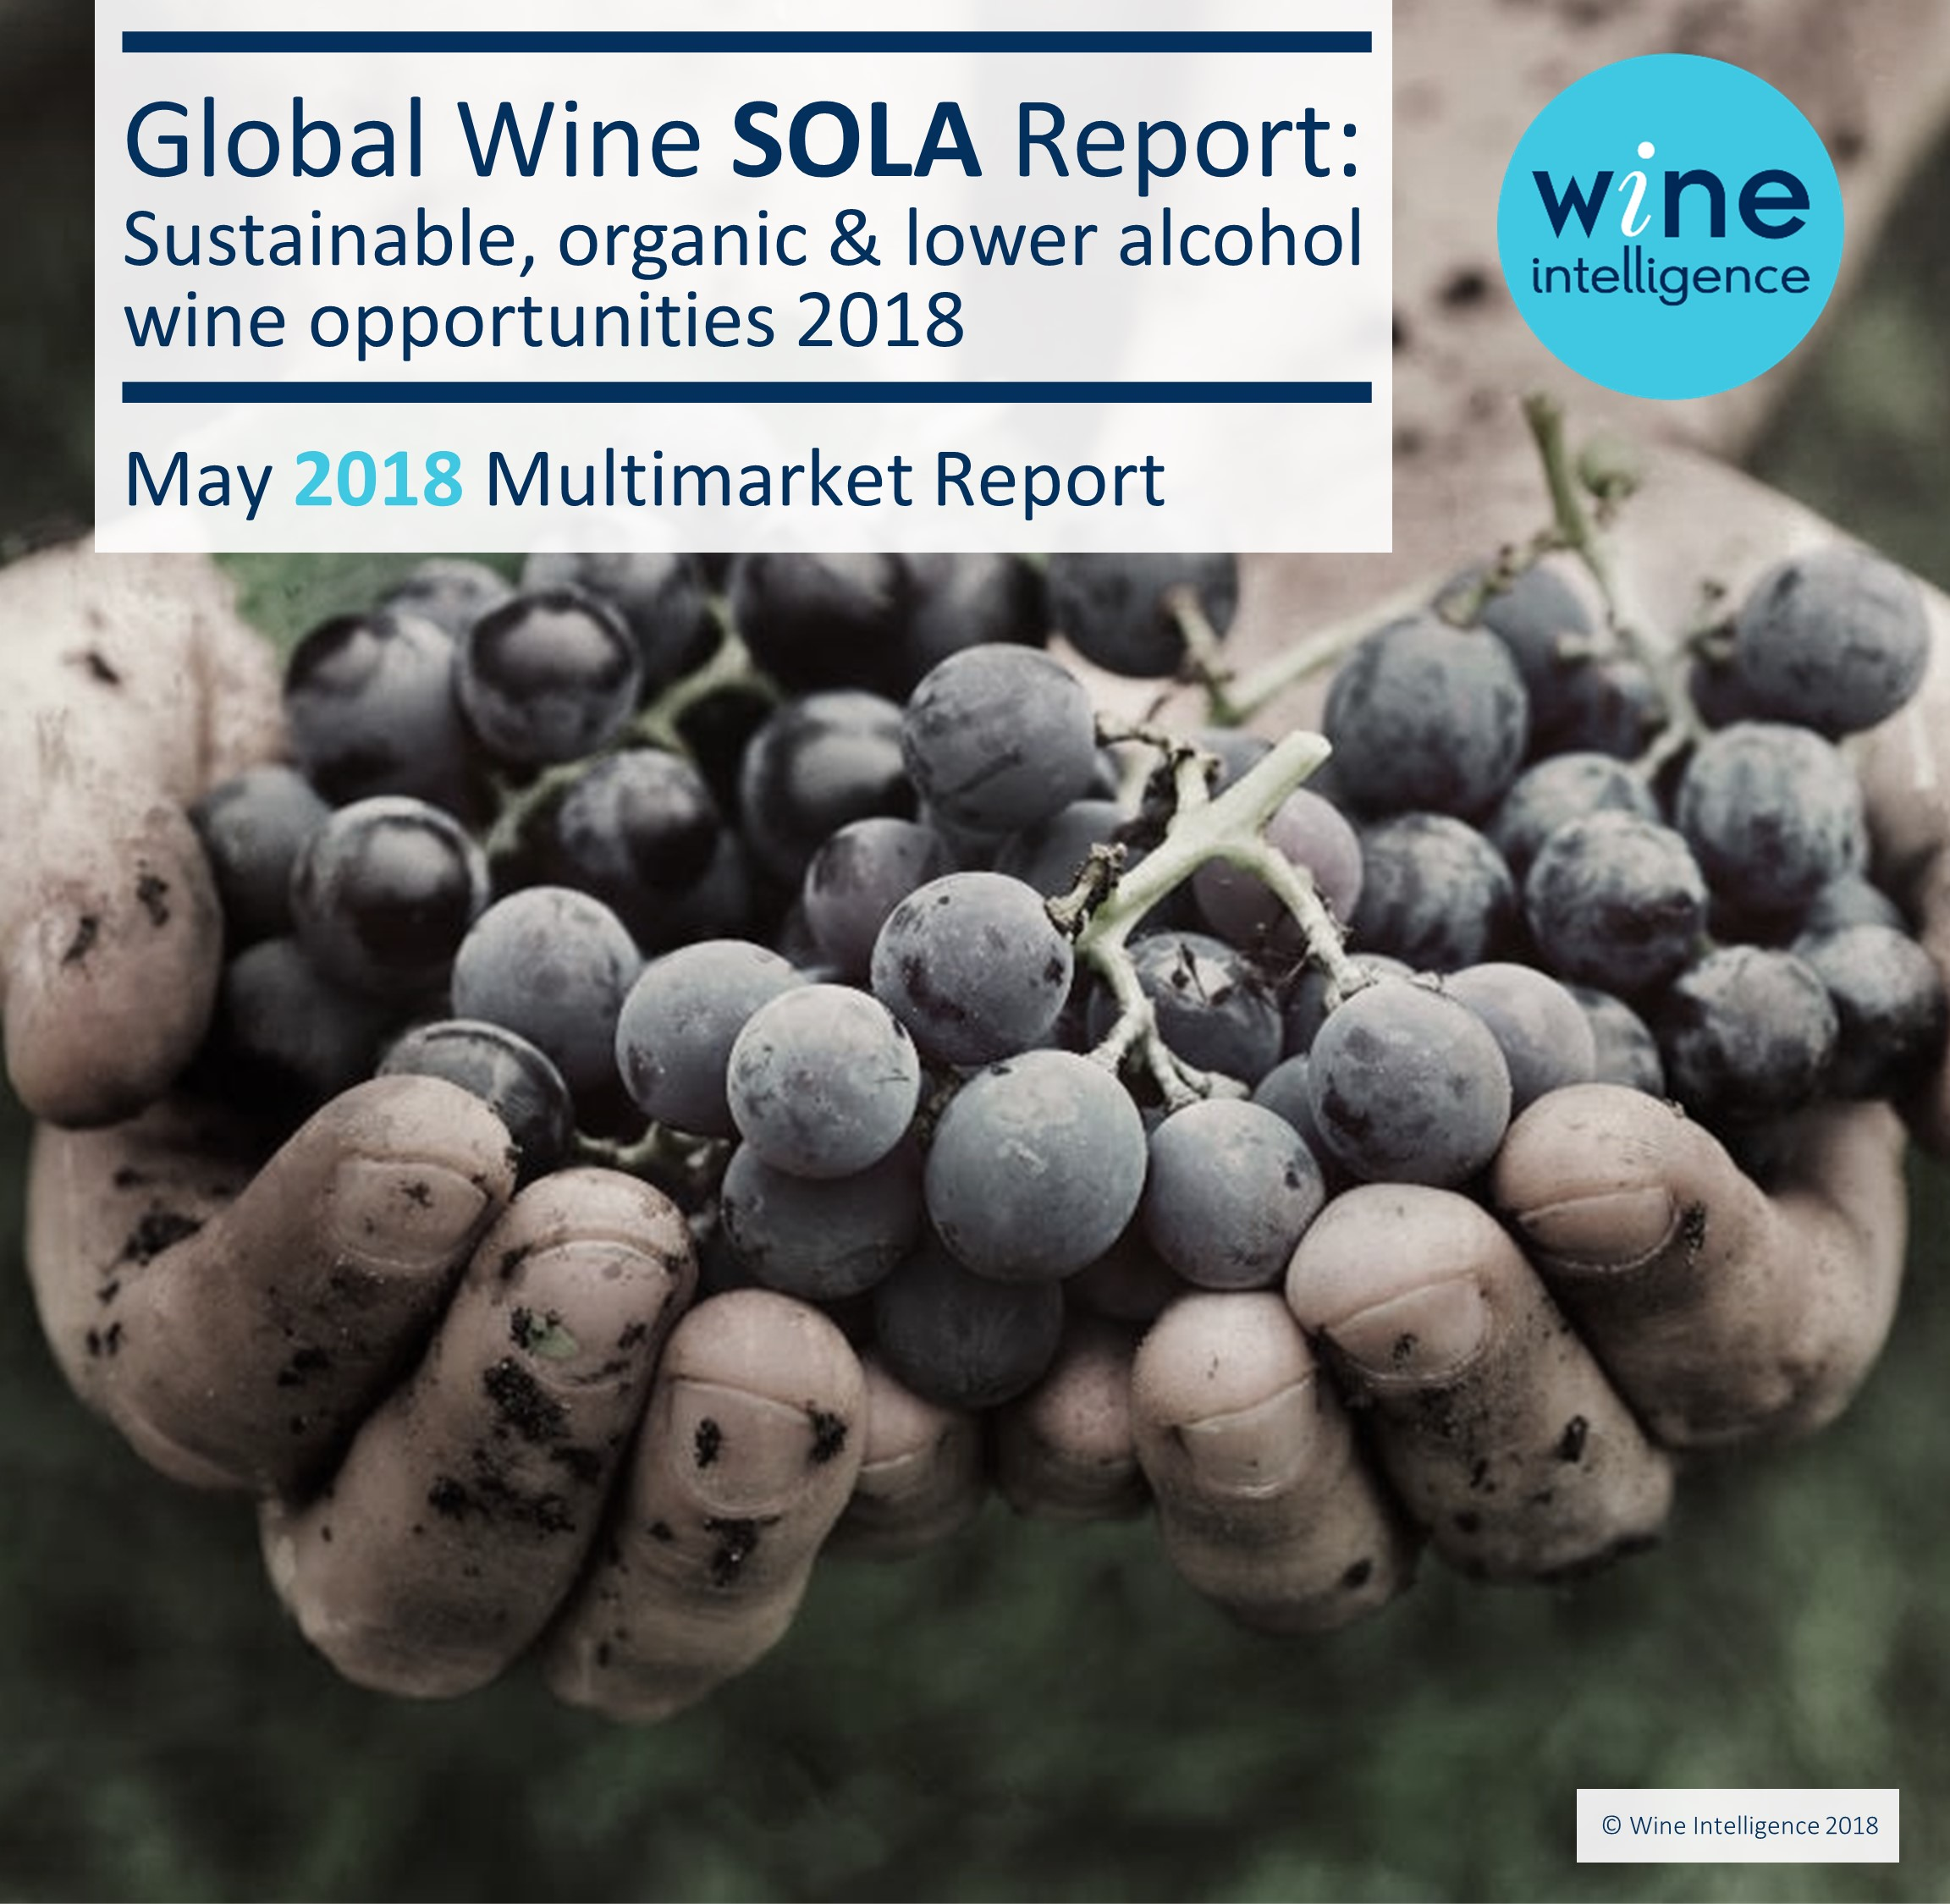 SOLA - Press release: Lower-alcohol wine opportunities still niche